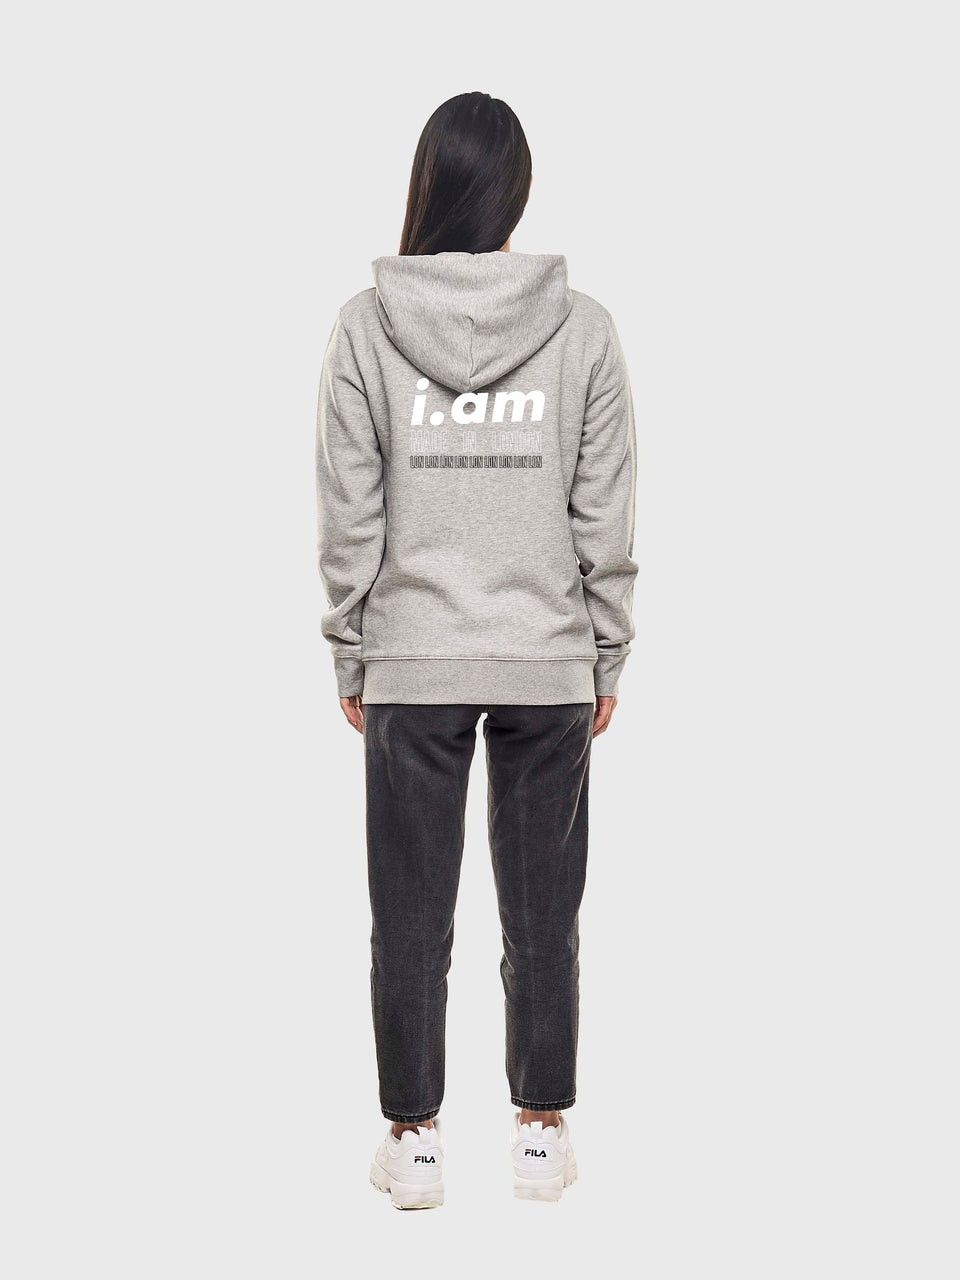 Made in London - Grey - Unisex pull over hoodie